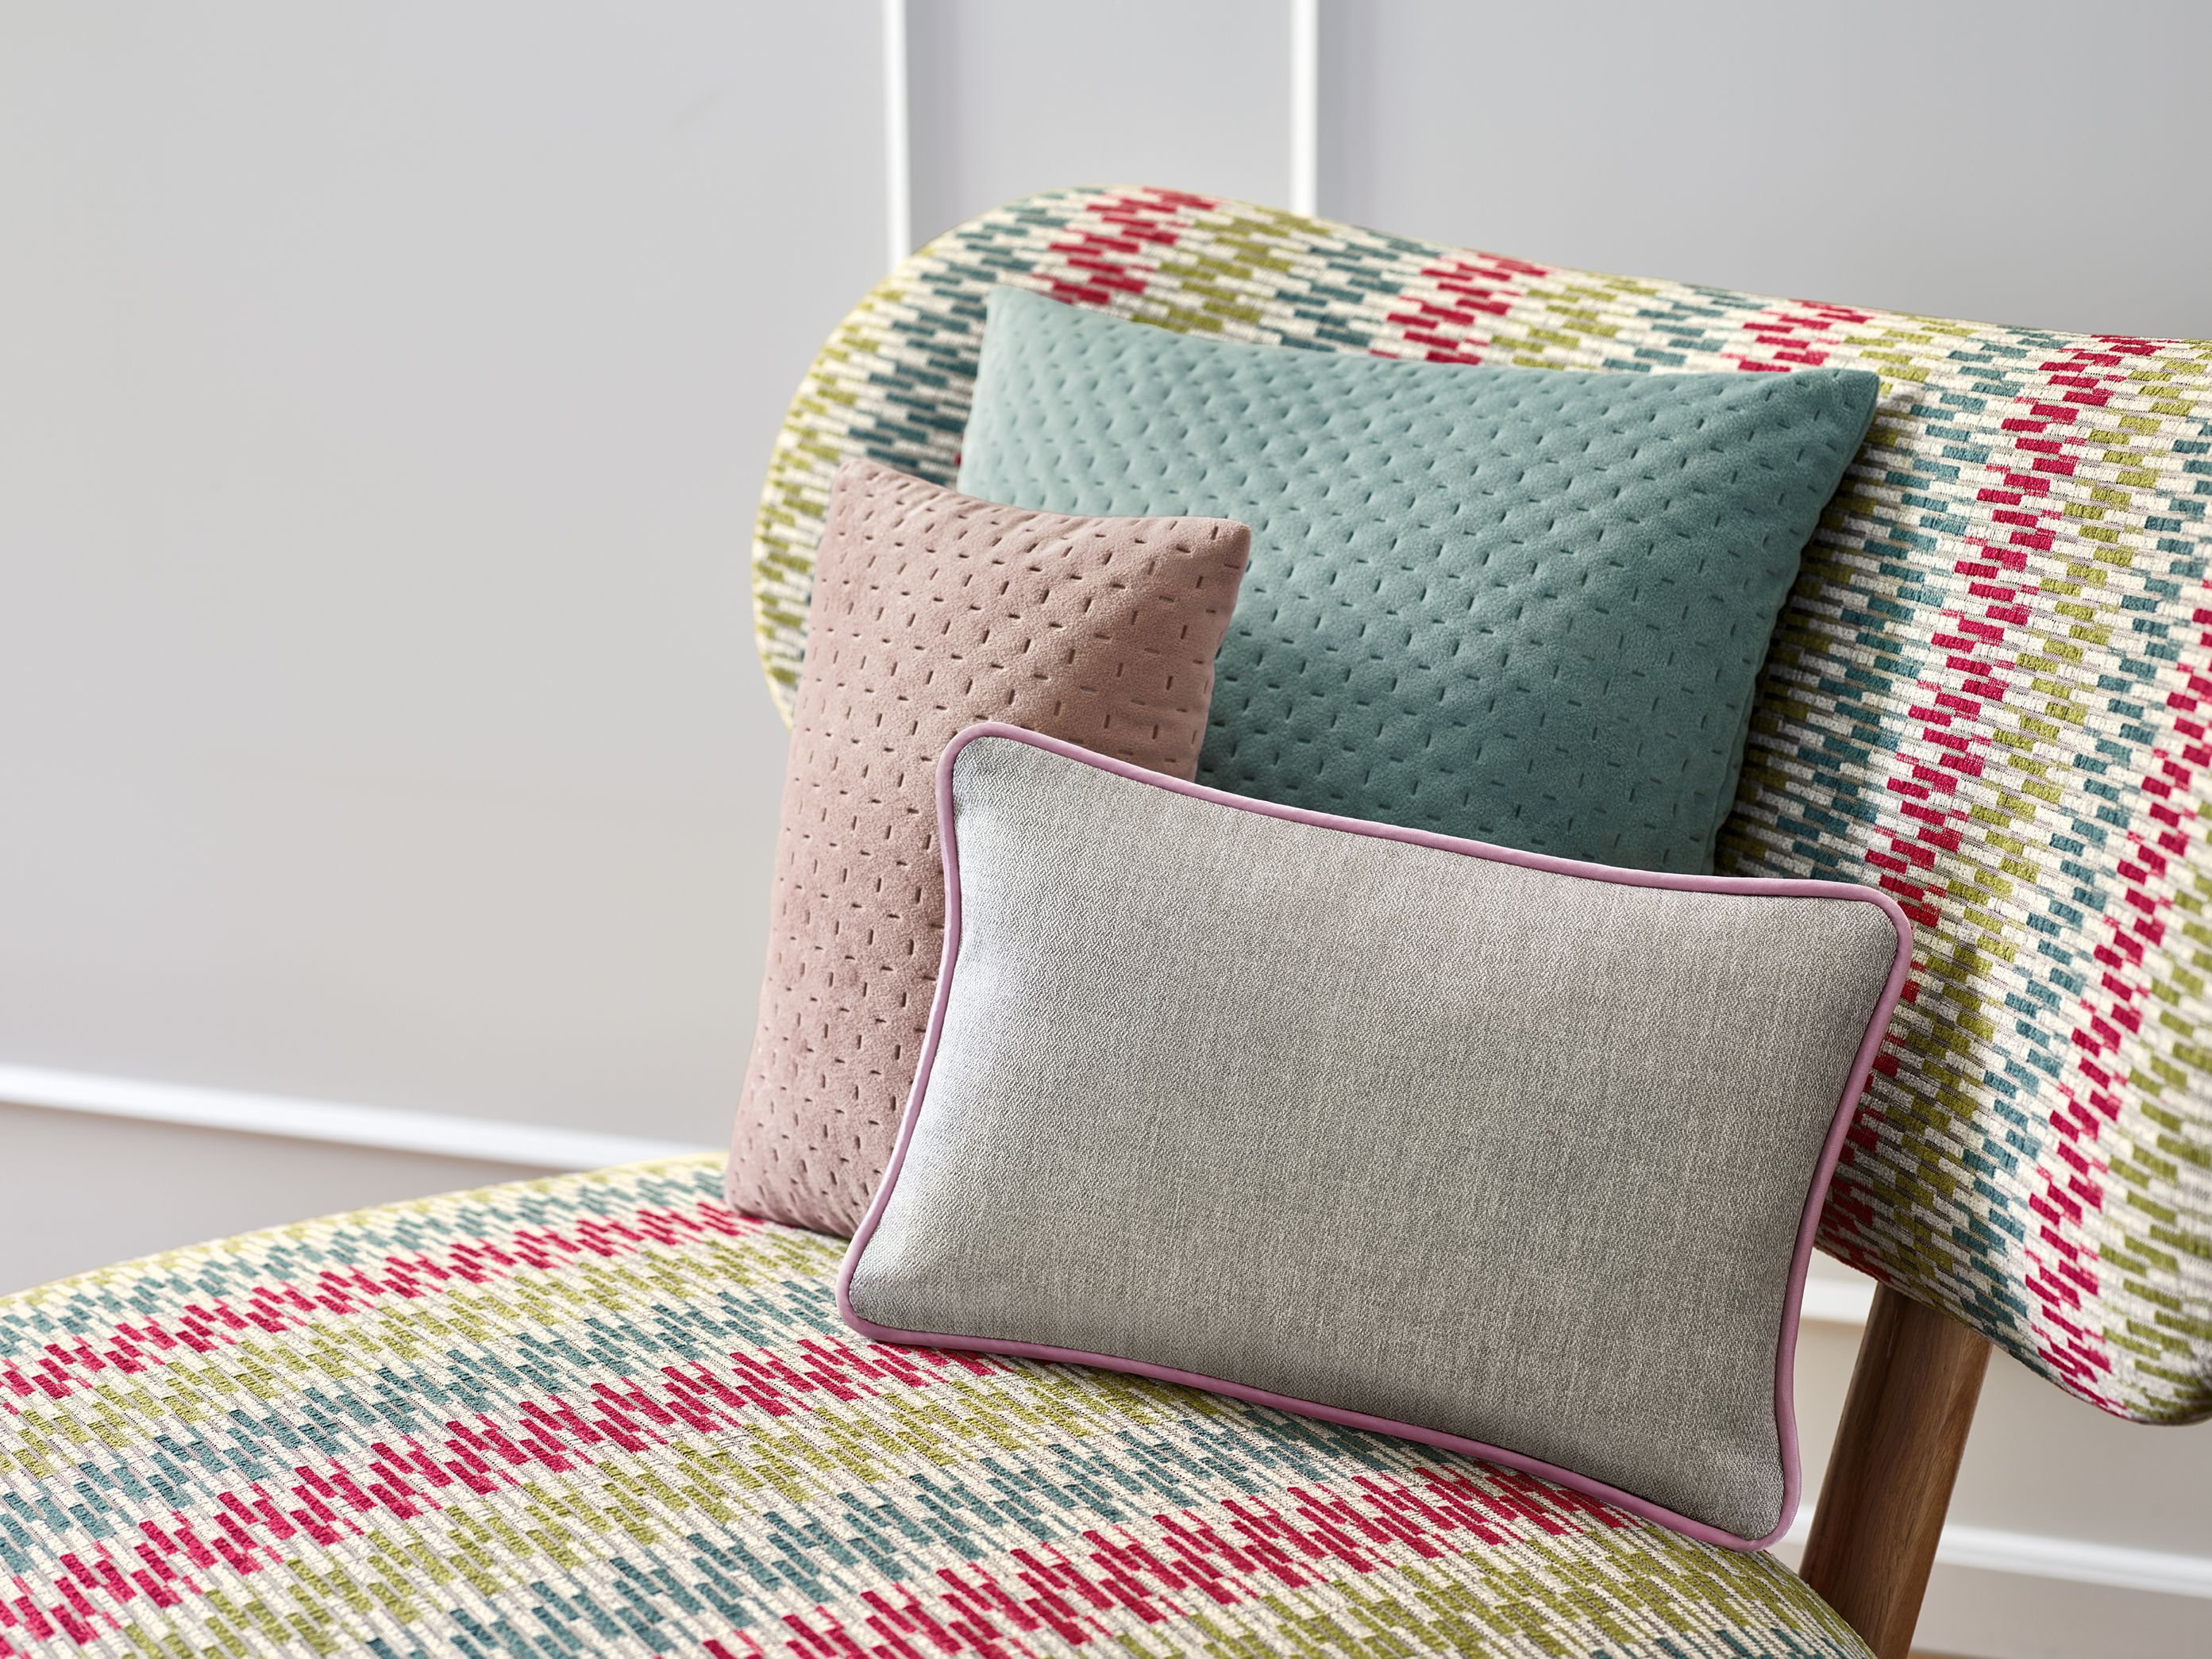 How Do You Like This Colorful Zigzag Upholstery Fabric From Ado Goldkante The Graphical Interpretation Of The Stripes Cre Polsterstoffe Bunt Zuhause